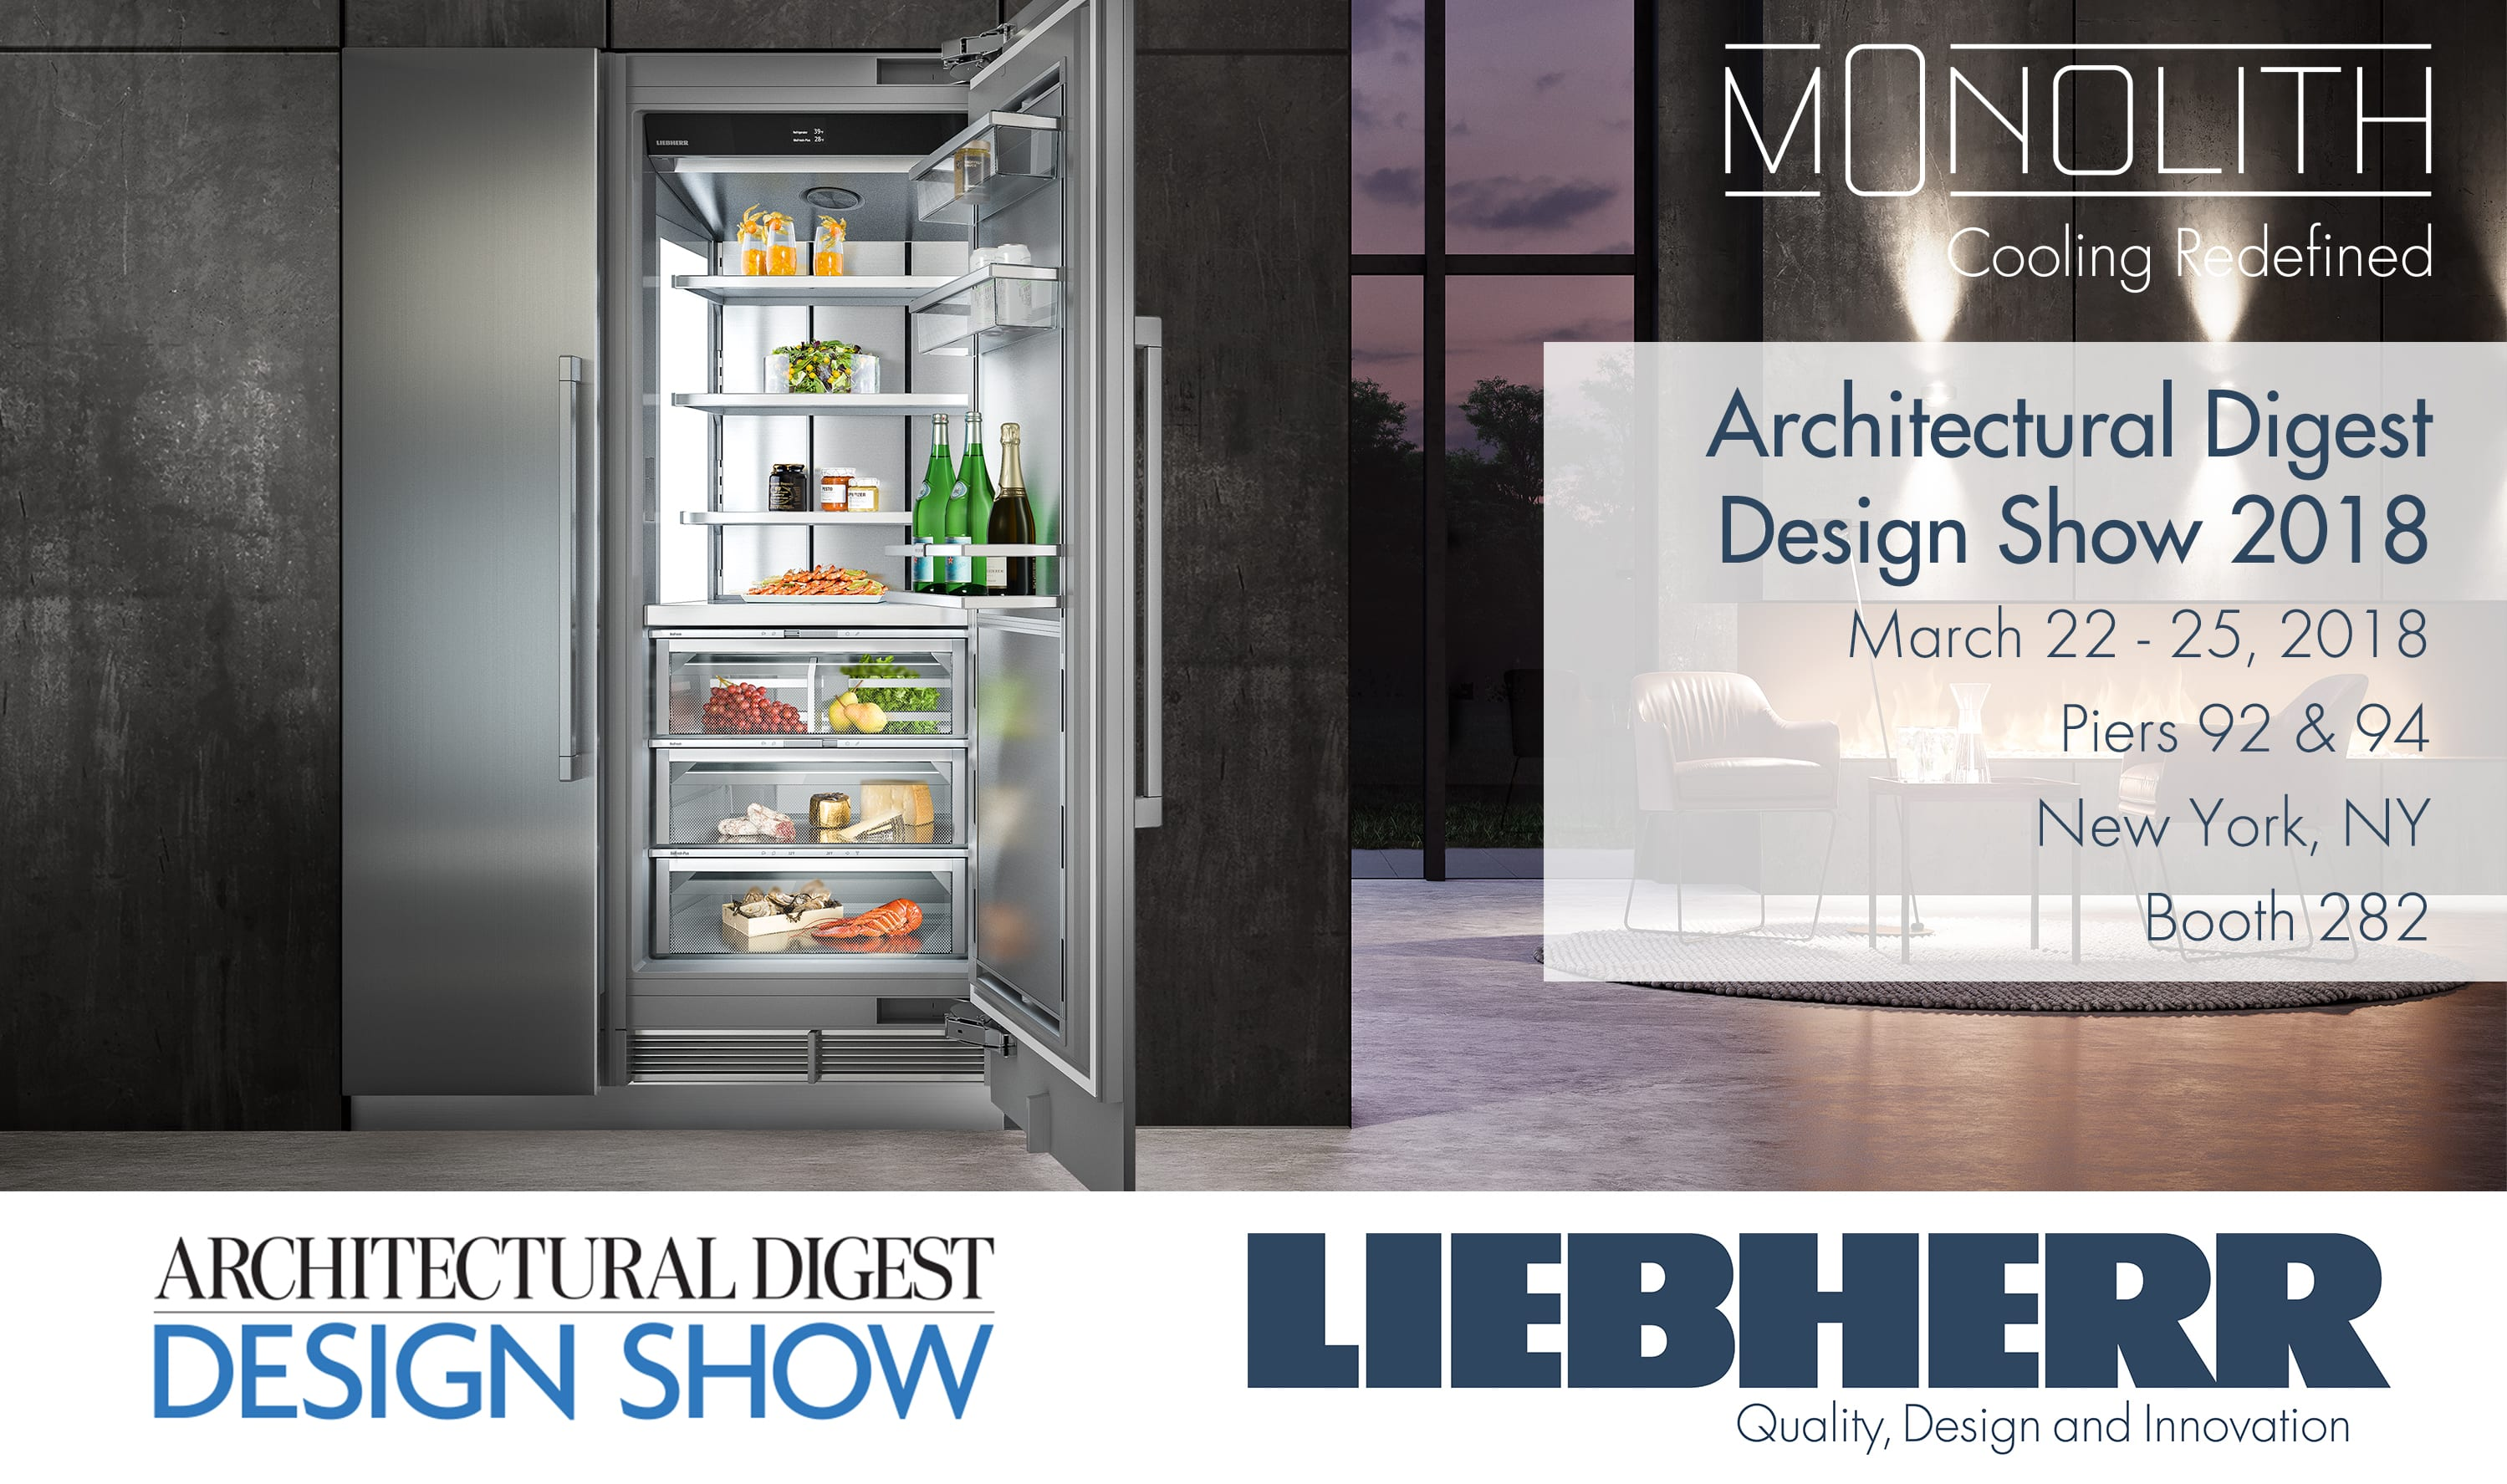 Liebherr Showcases Monolith Towers and New Undercounter ... on architecture home design show, architectural digest interior design, architectural design concepts, architectural digest show 2014, architectural digest home plans, architectural digest home show 2015, architectural digest home decor show, ad home design show, architectural digest home interiors, architectural design show nyc, arch digest home show, architectural digest trade show, architectural bedroom artwork, architectural digest home library,